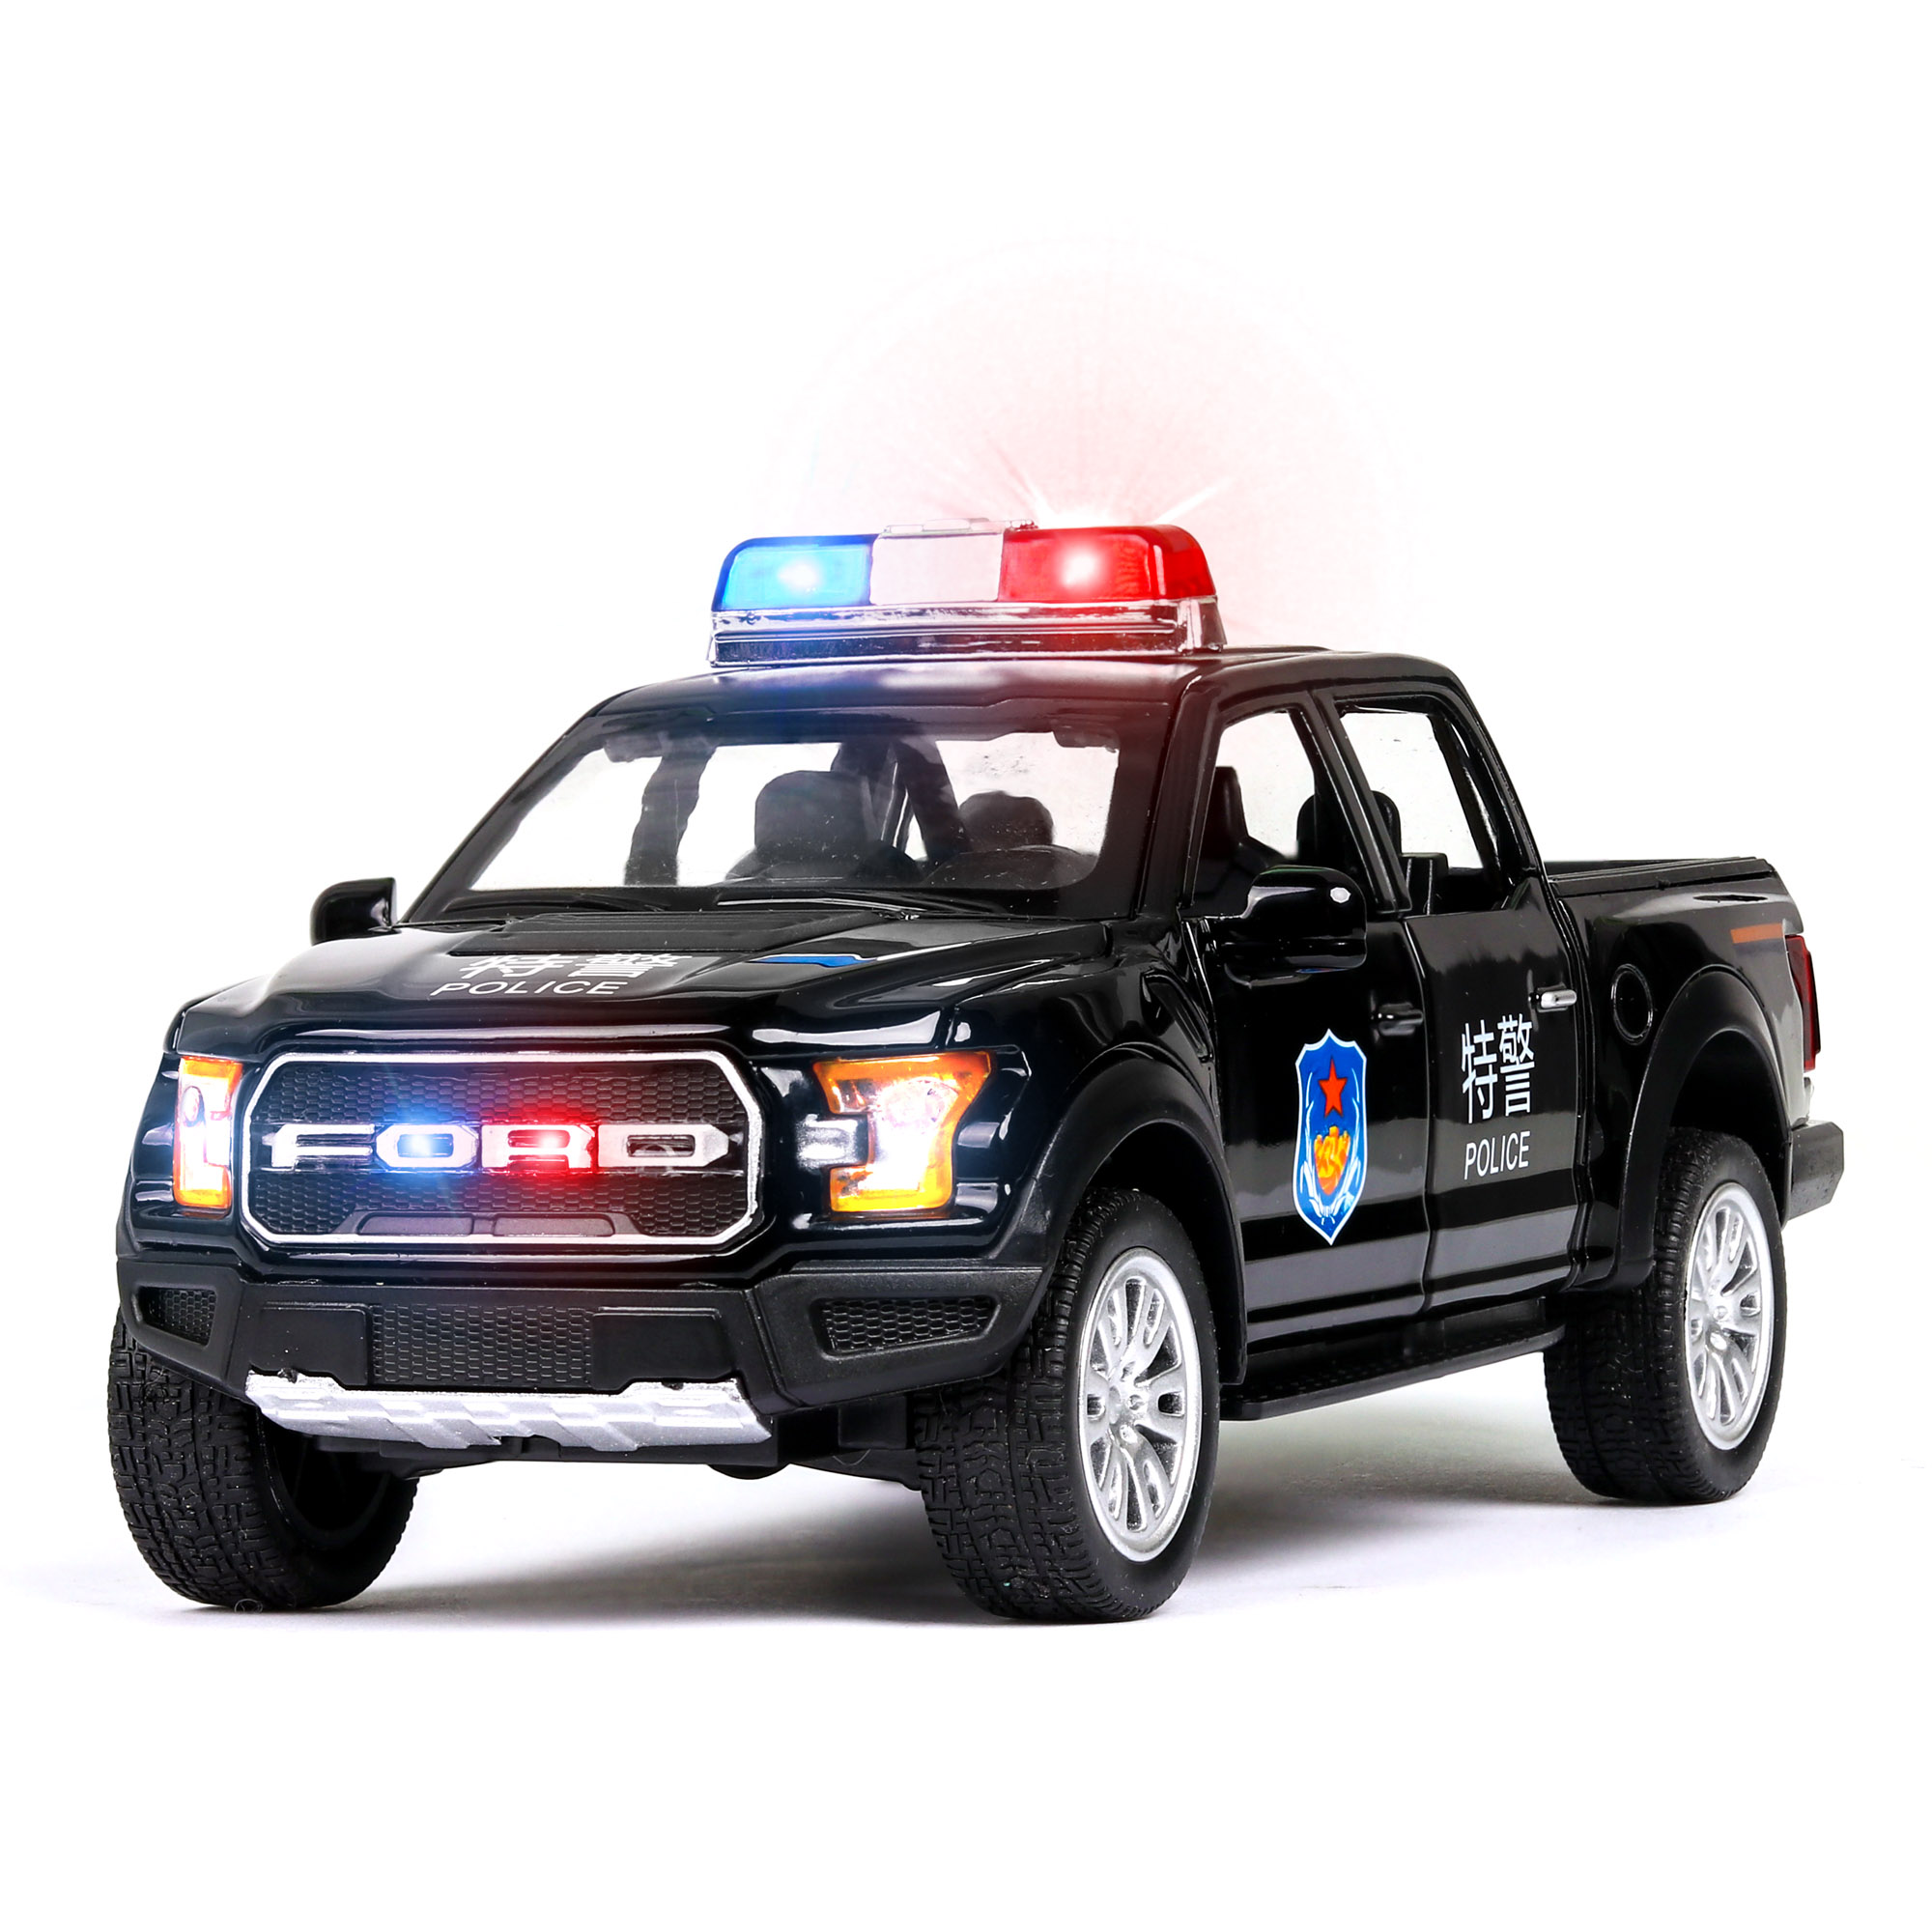 New 1:32 Ford F150 Police Alloy Car Model Diecasts & Toy Vehicles Toy Cars Educational Toys For Children Gifts Boy Toy